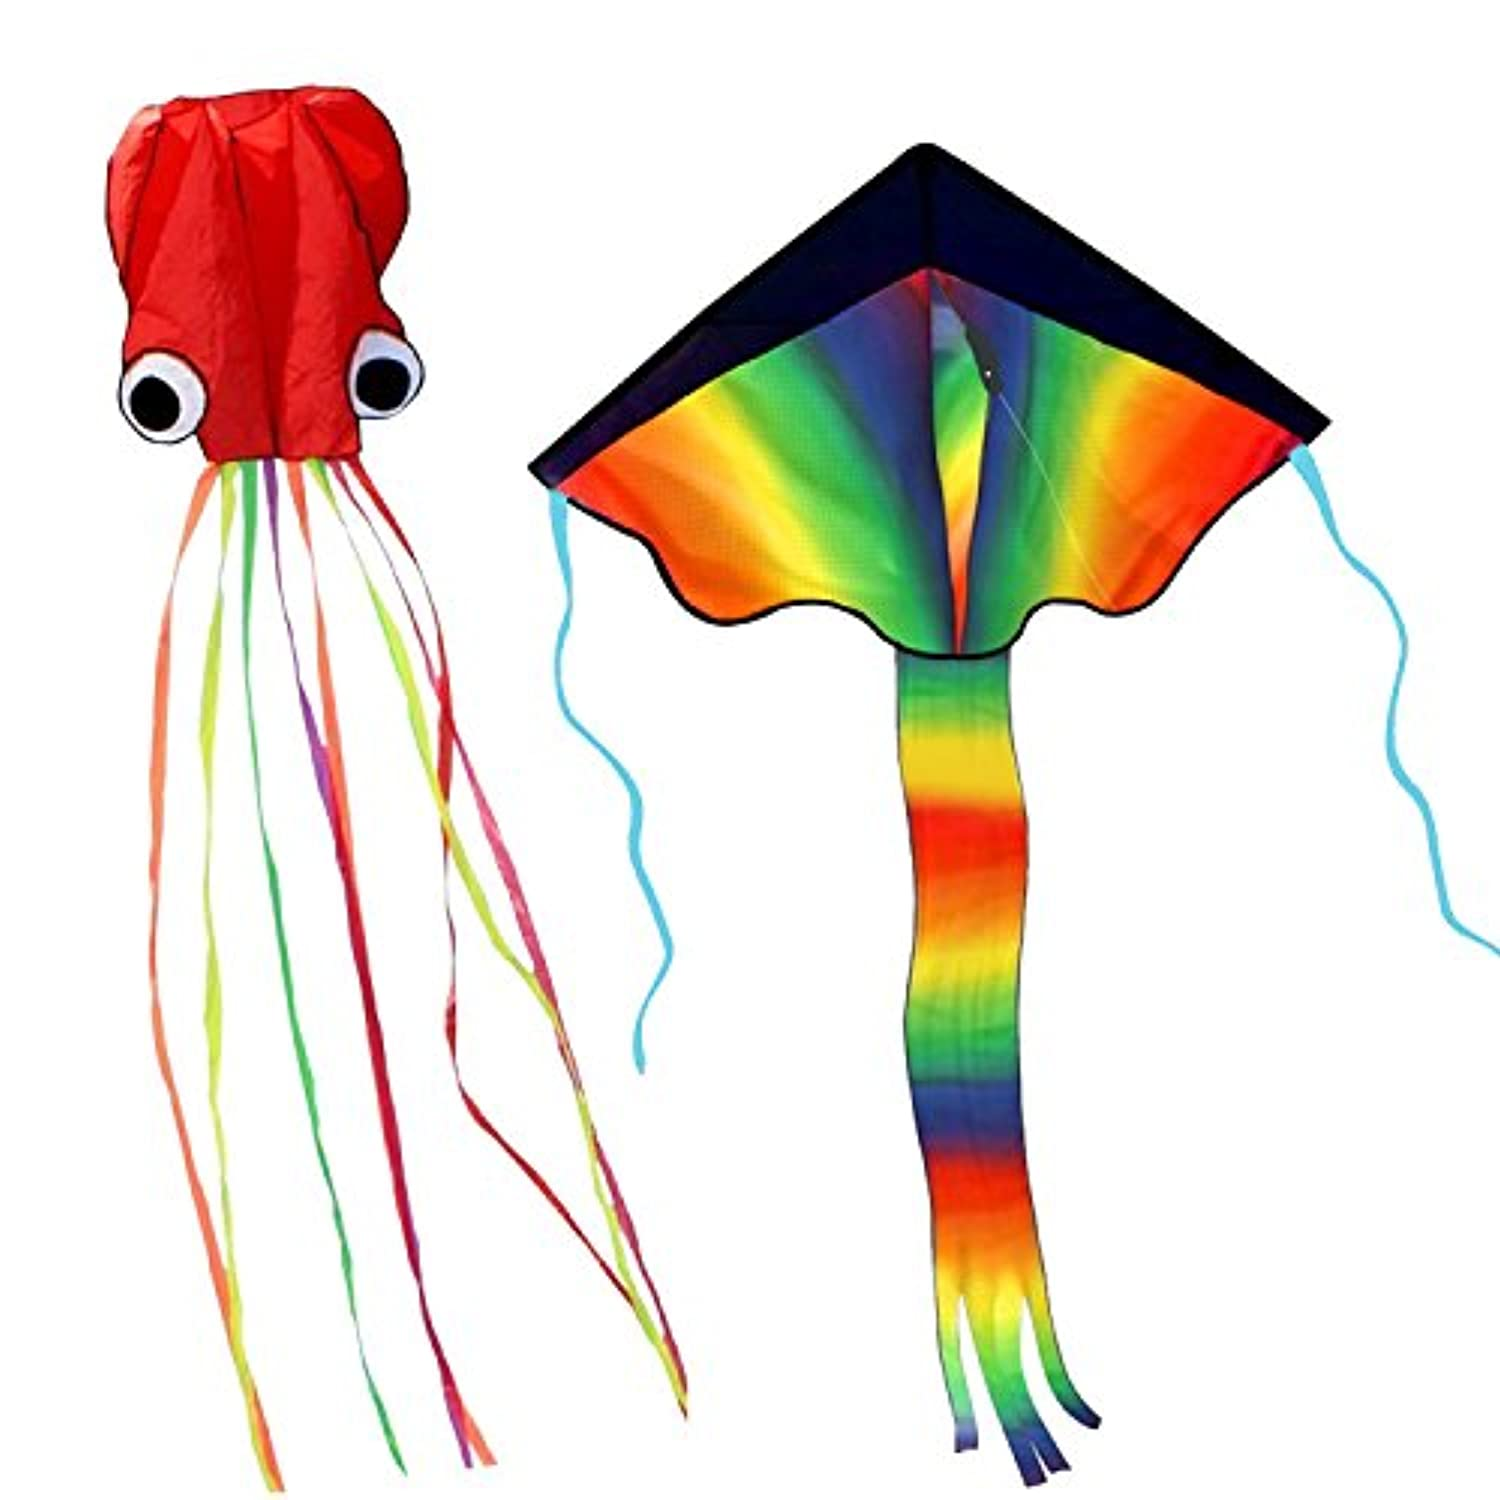 2 PACK Huge Rainbow Kite + Red Mollusc Octopus Kite For Kids - Beautiful Large Easy Flyer Kite for Kids with 157inch Long Tail and 200cm Line - Perfect for Beach or Park by R o HORSE